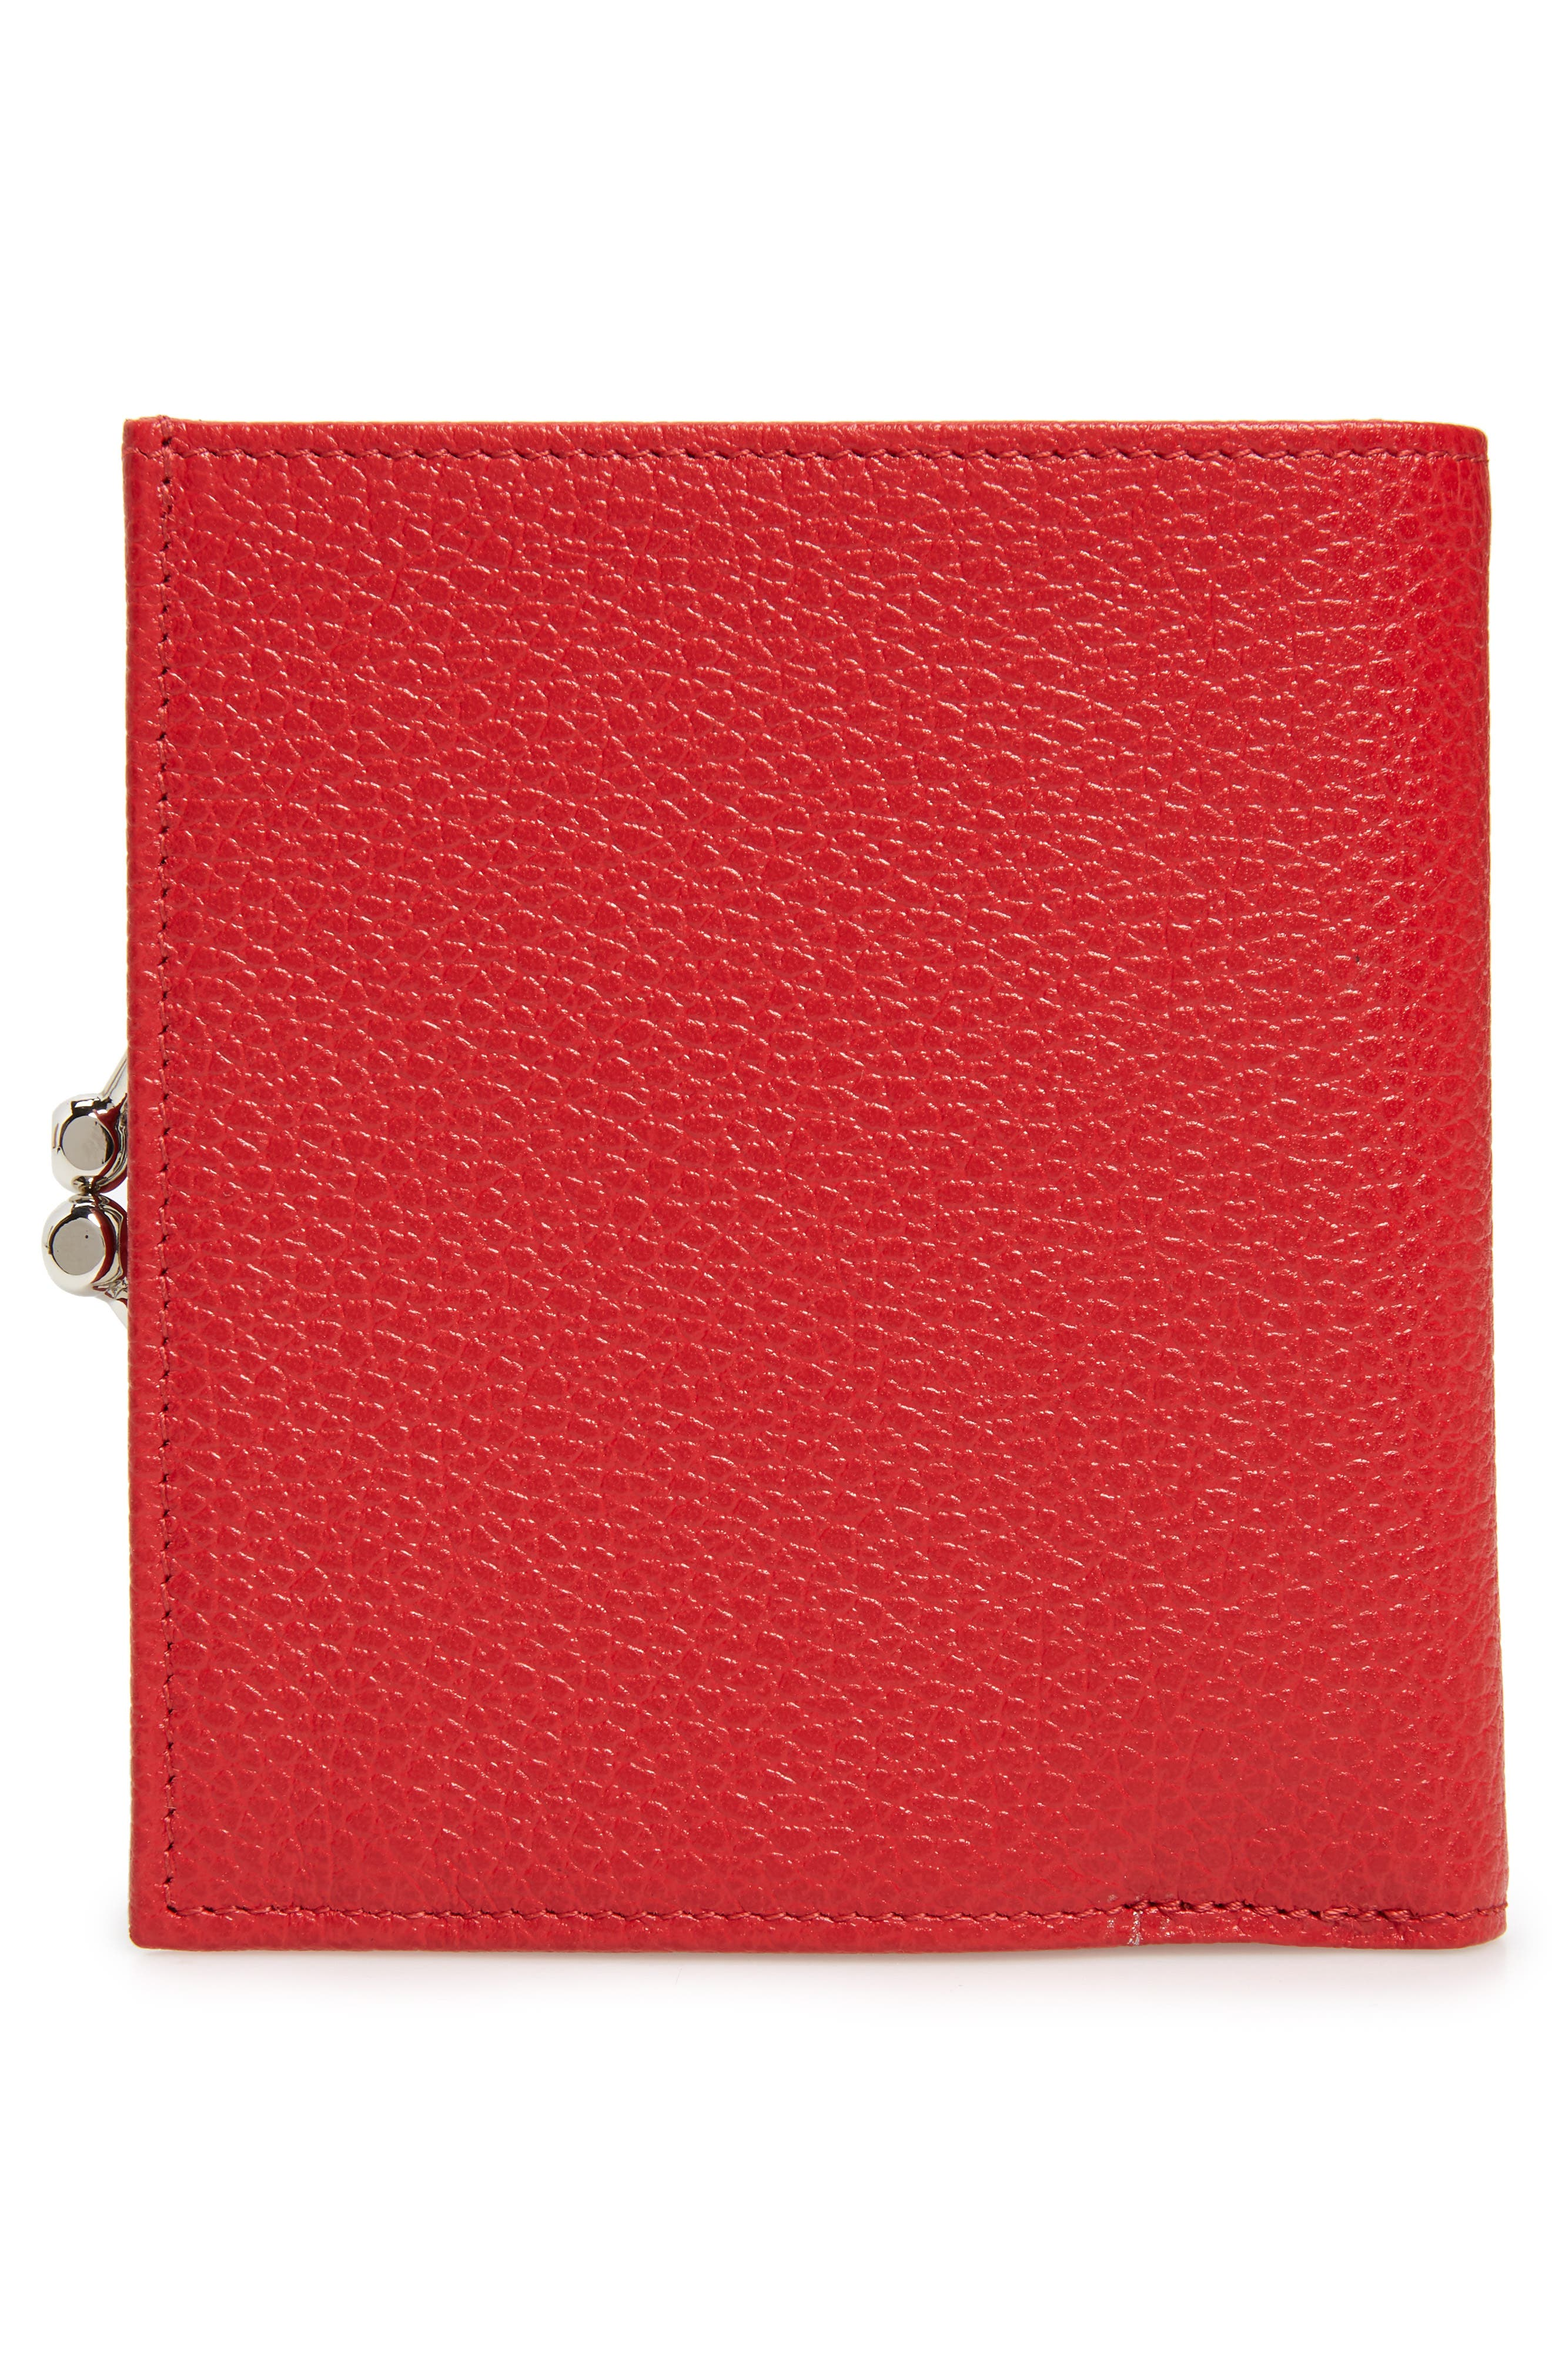 LONGCHAMP, 'Le Foulonne' Pebbled Leather Wallet, Alternate thumbnail 4, color, RED ORANGE